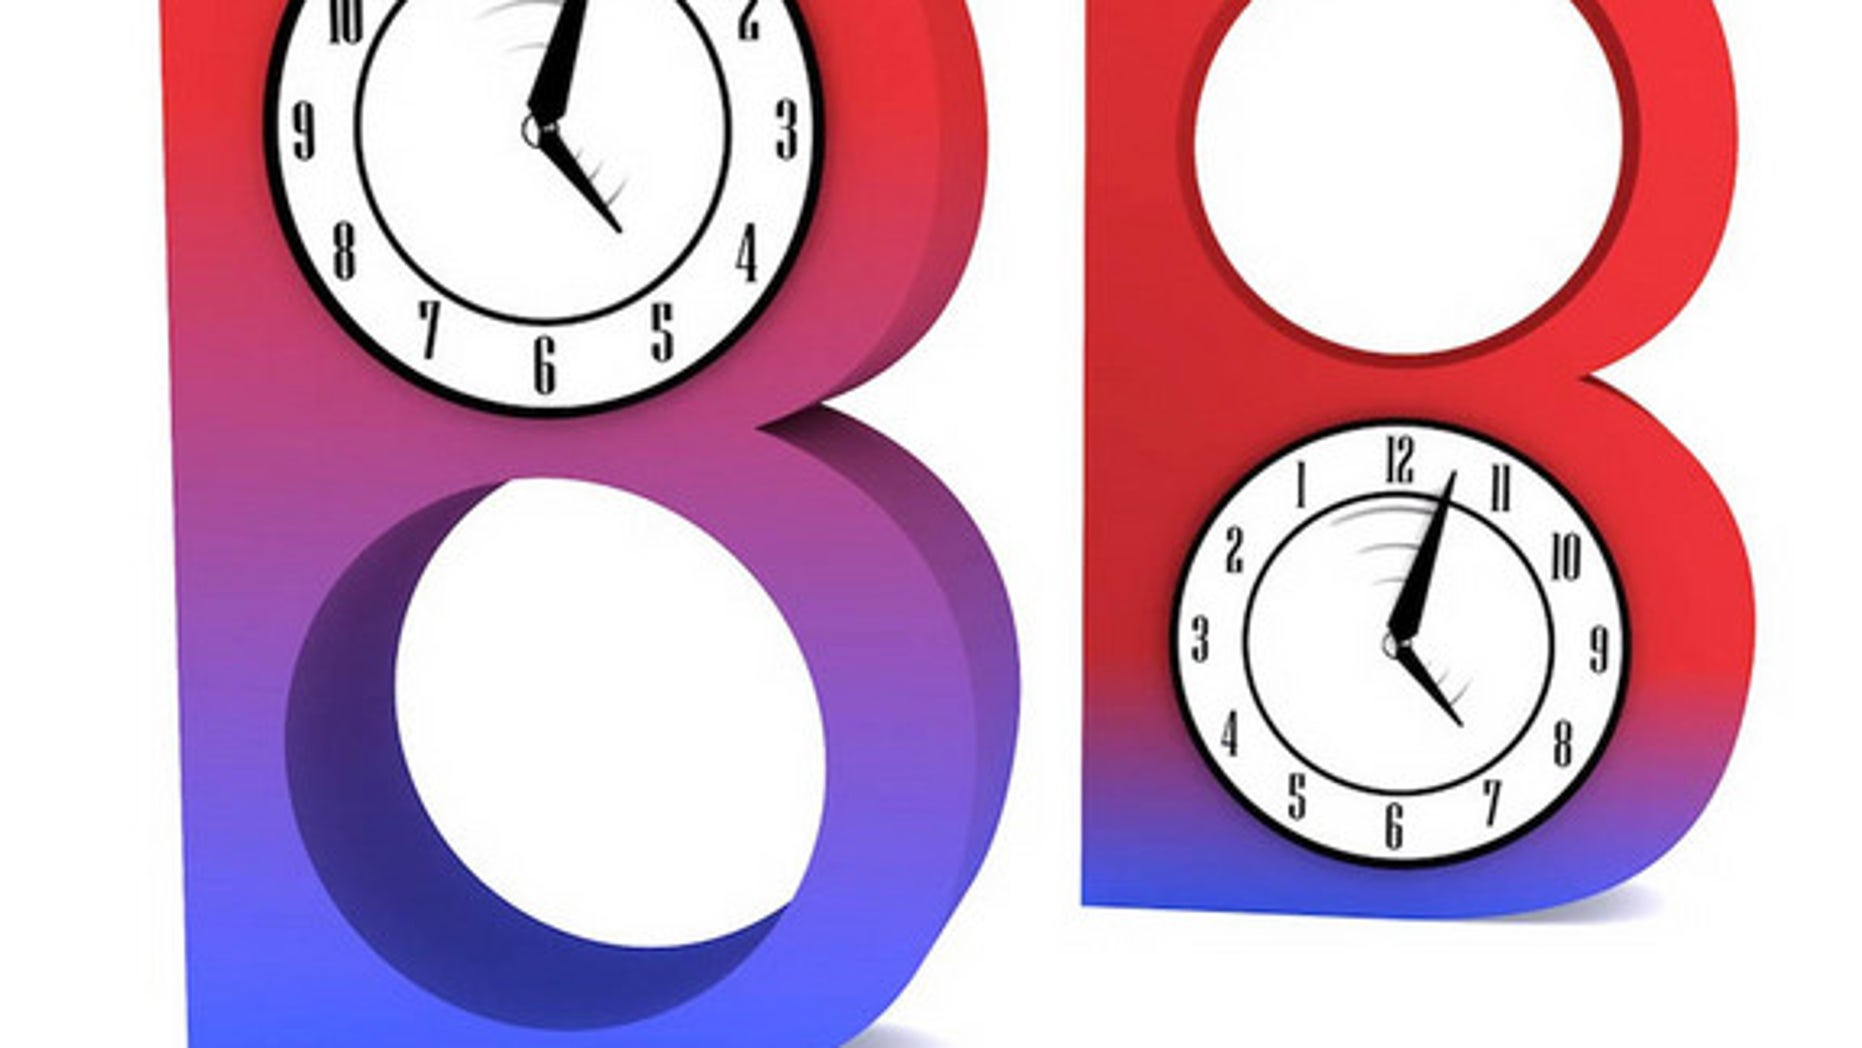 In this illustration, two different B mesons are changing between states (represented as colors); however blue-B changes into red-B more quickly than red-B changes into blue-B (a process running in reverse-time, as shown by the backwards clock